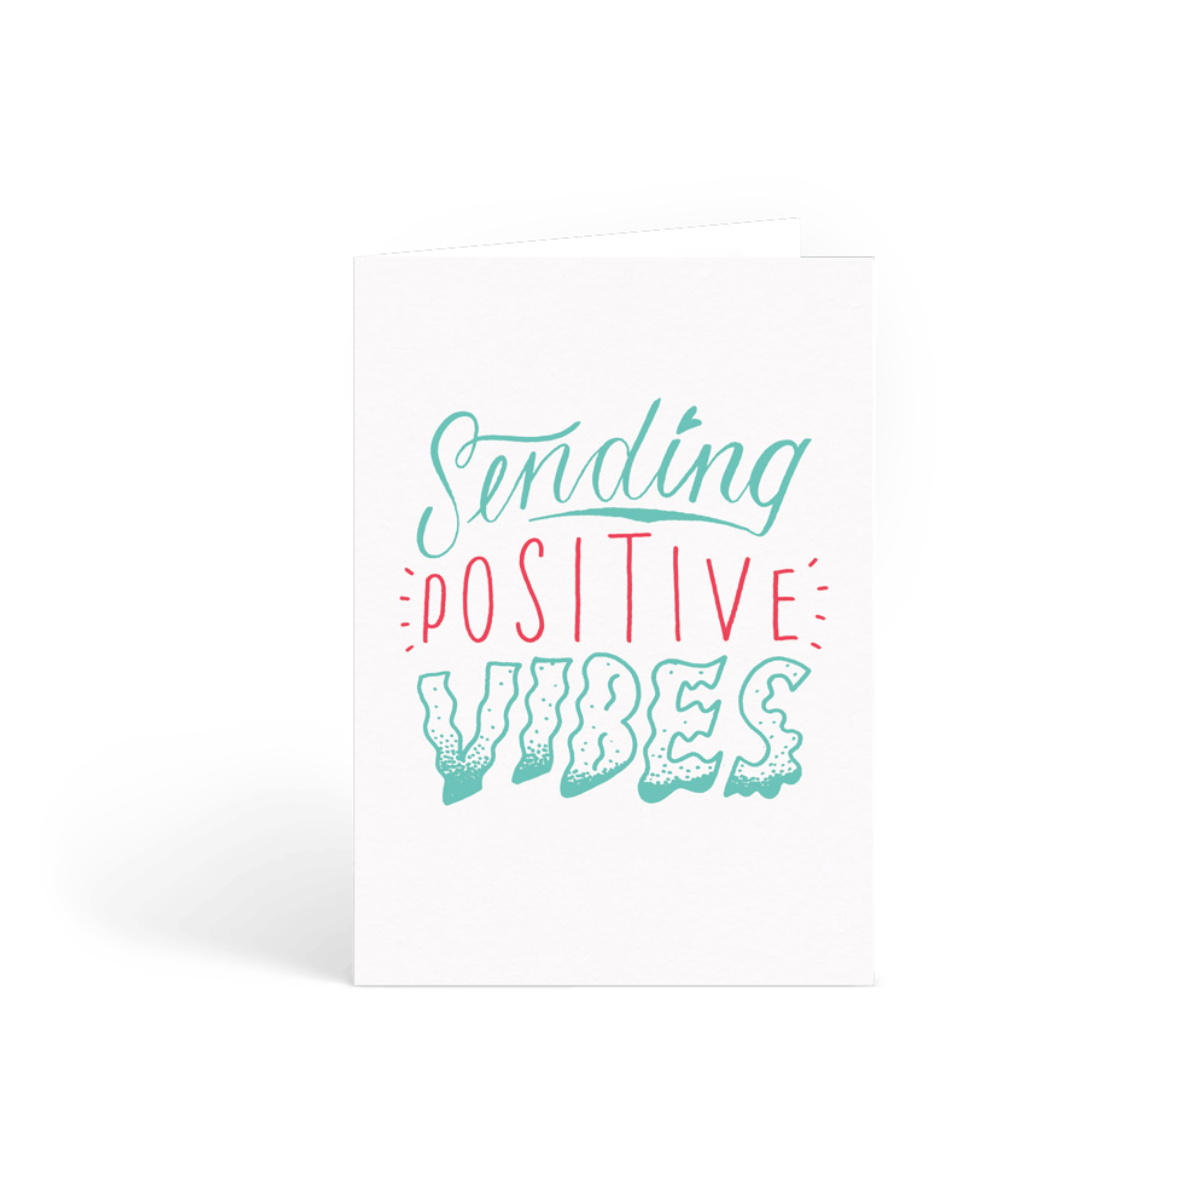 Https%3a%2f%2fwww.papier.com%2fproduct image%2f16268%2f2%2fpositive vibes 4301 front 1484670852.png?ixlib=rb 1.1